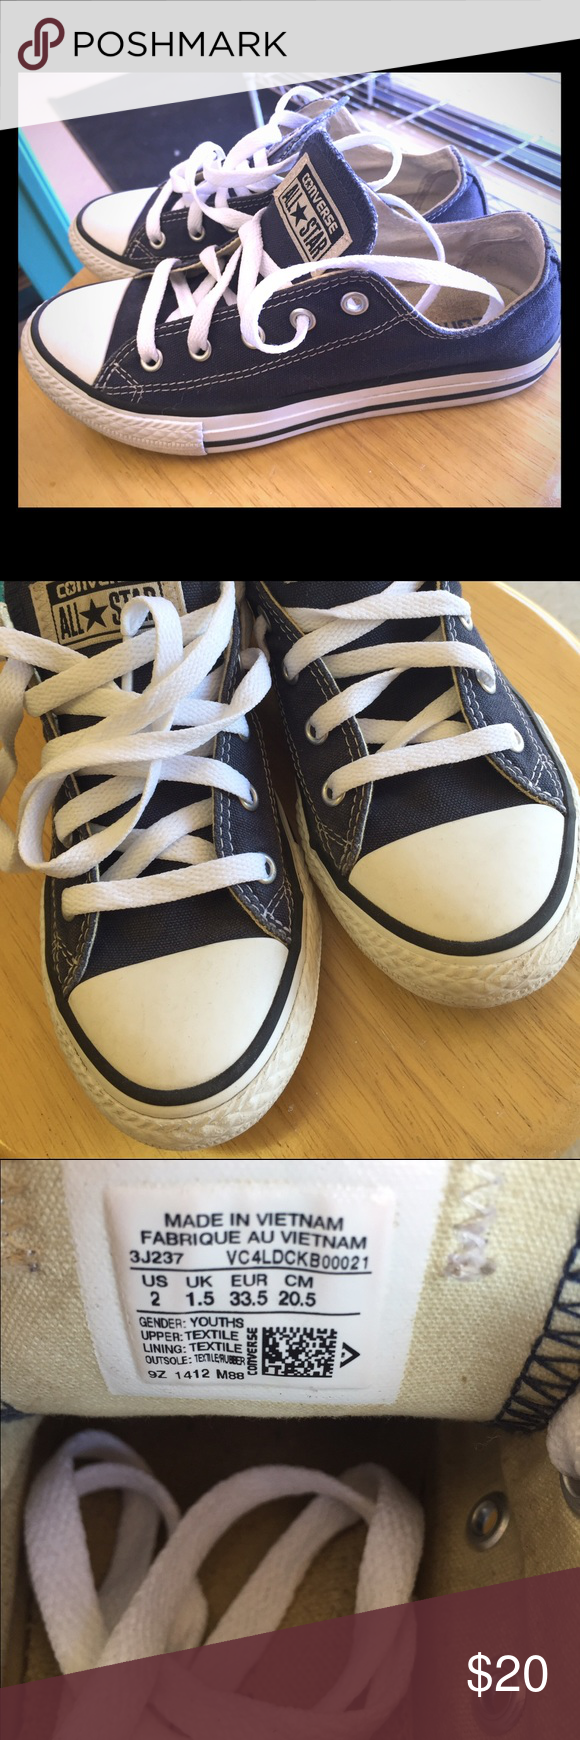 7cf3a8140753 Like new navy blue converse all stars six 2 kids This is a size 2 pair of  converse Allstate-a resale as they were just a hair too small on me.